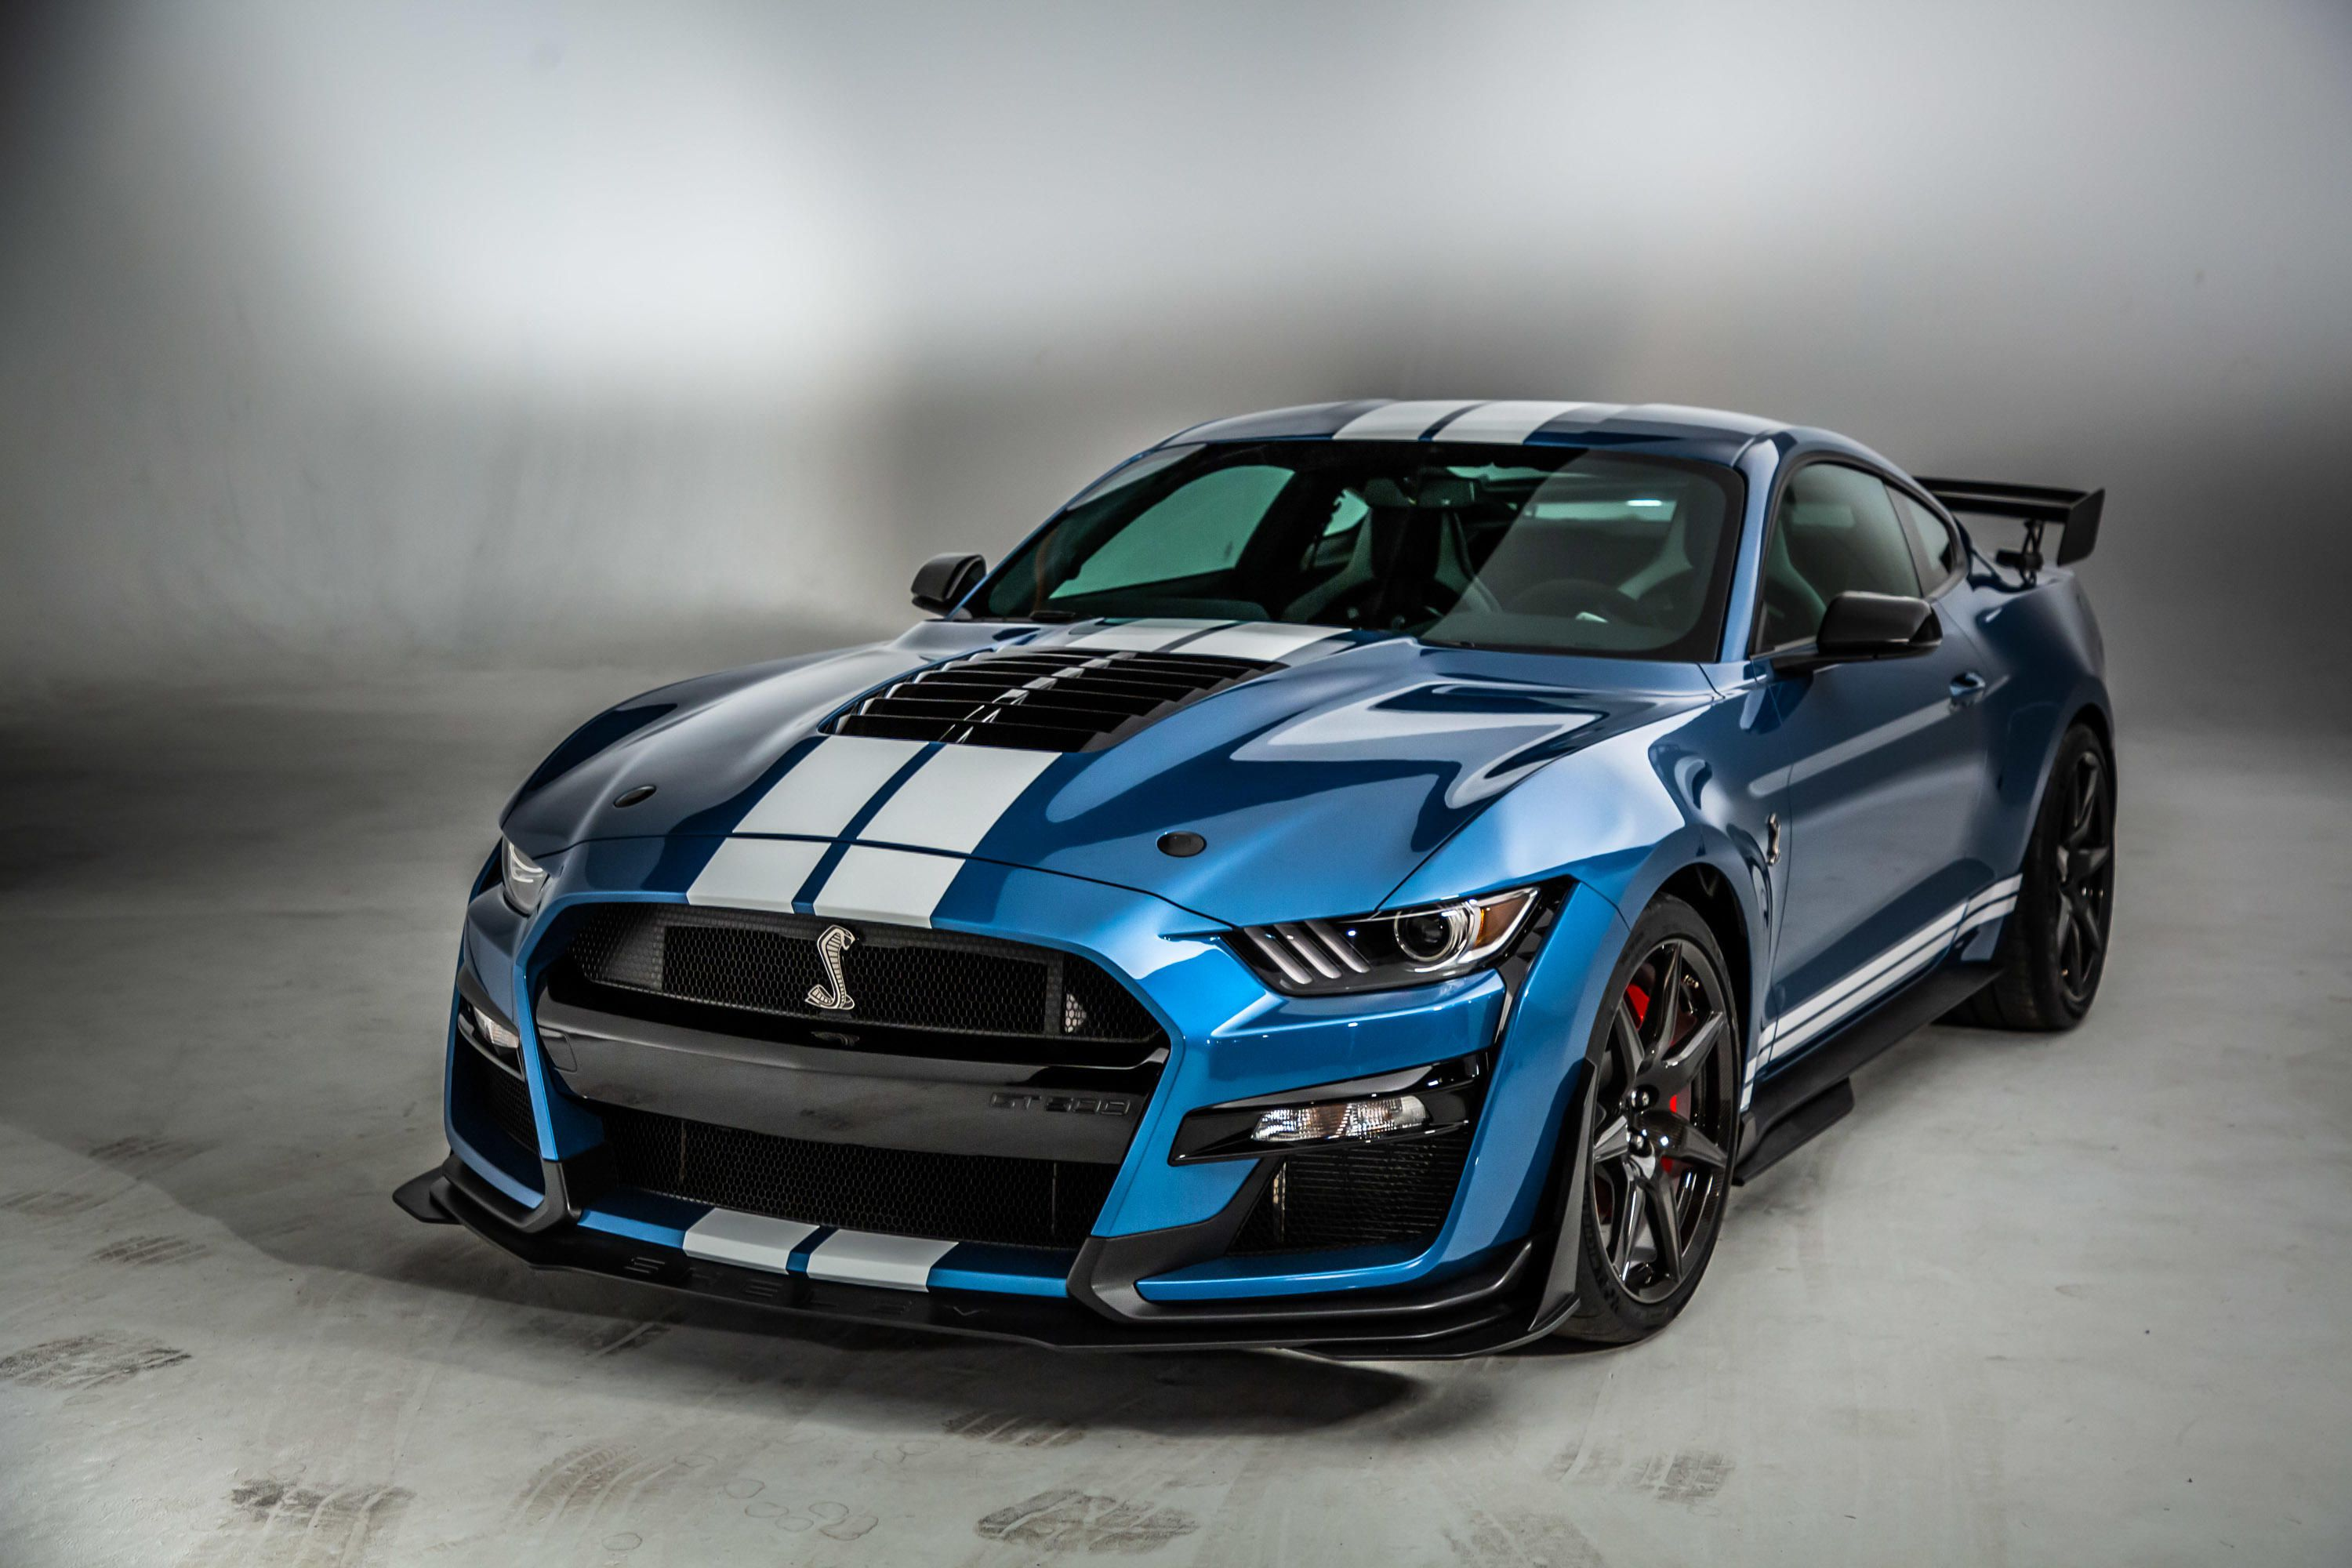 87 Best 2020 Mustang Shelby Gt350 Performance and New Engine